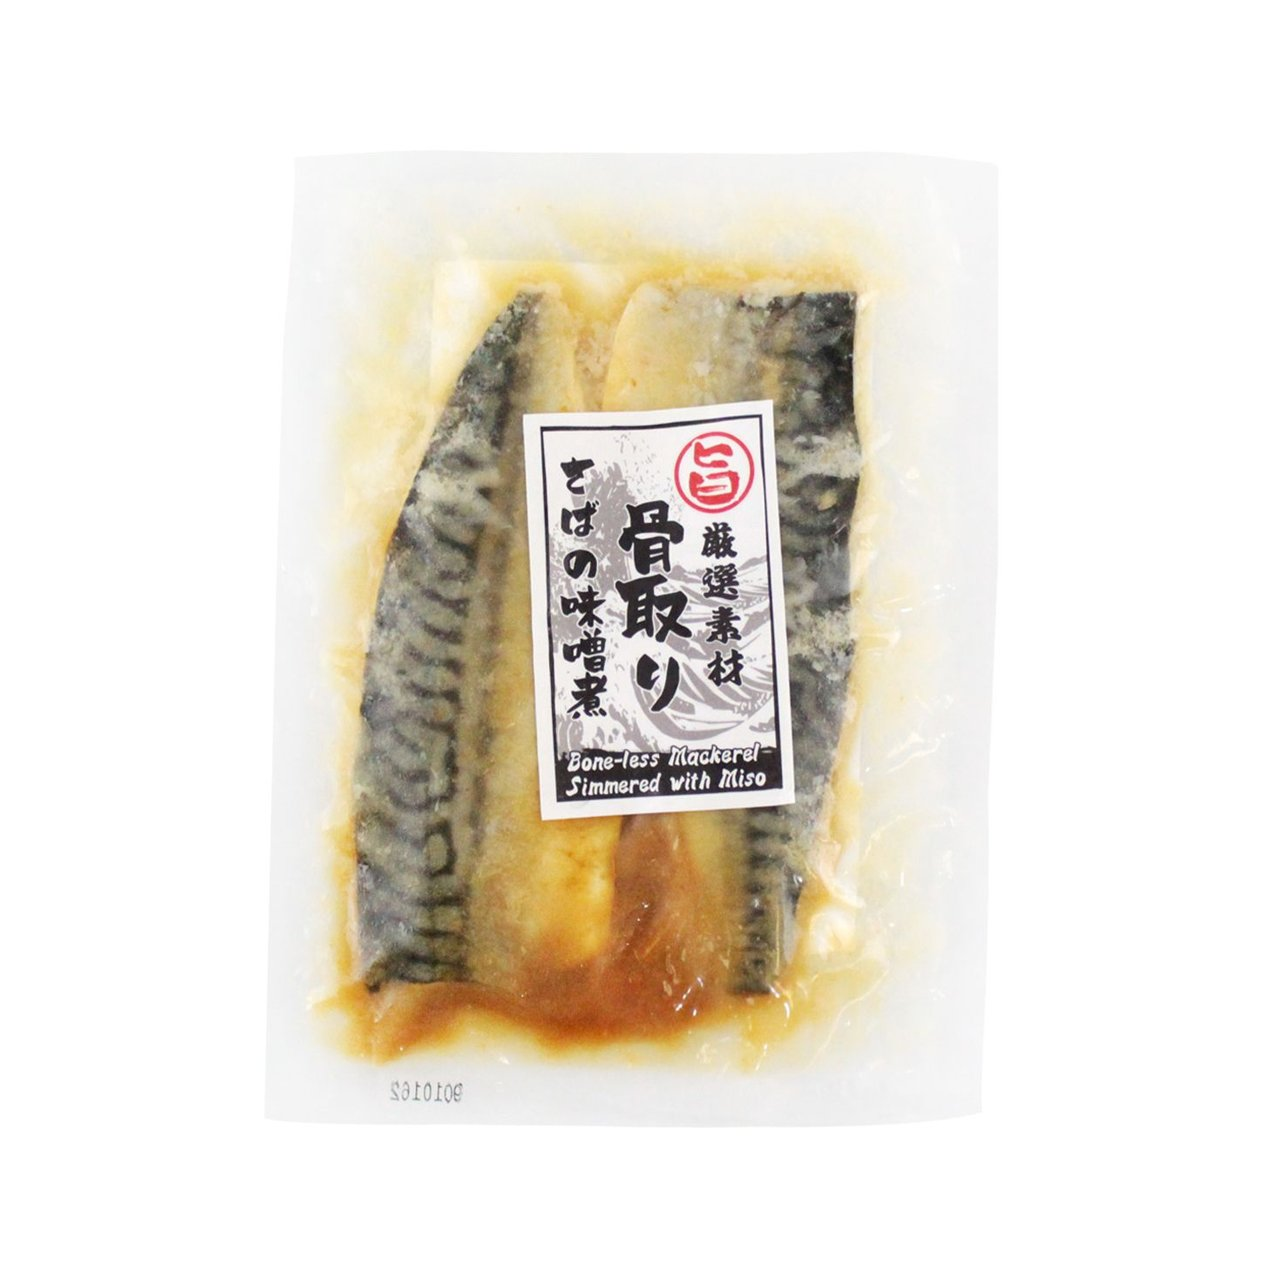 鯖 味噌煮 Frozen Saba Misoni Simmered in Miso 5.7 oz (160g) [Japanese Grocery Home Delivery to NY NJ]